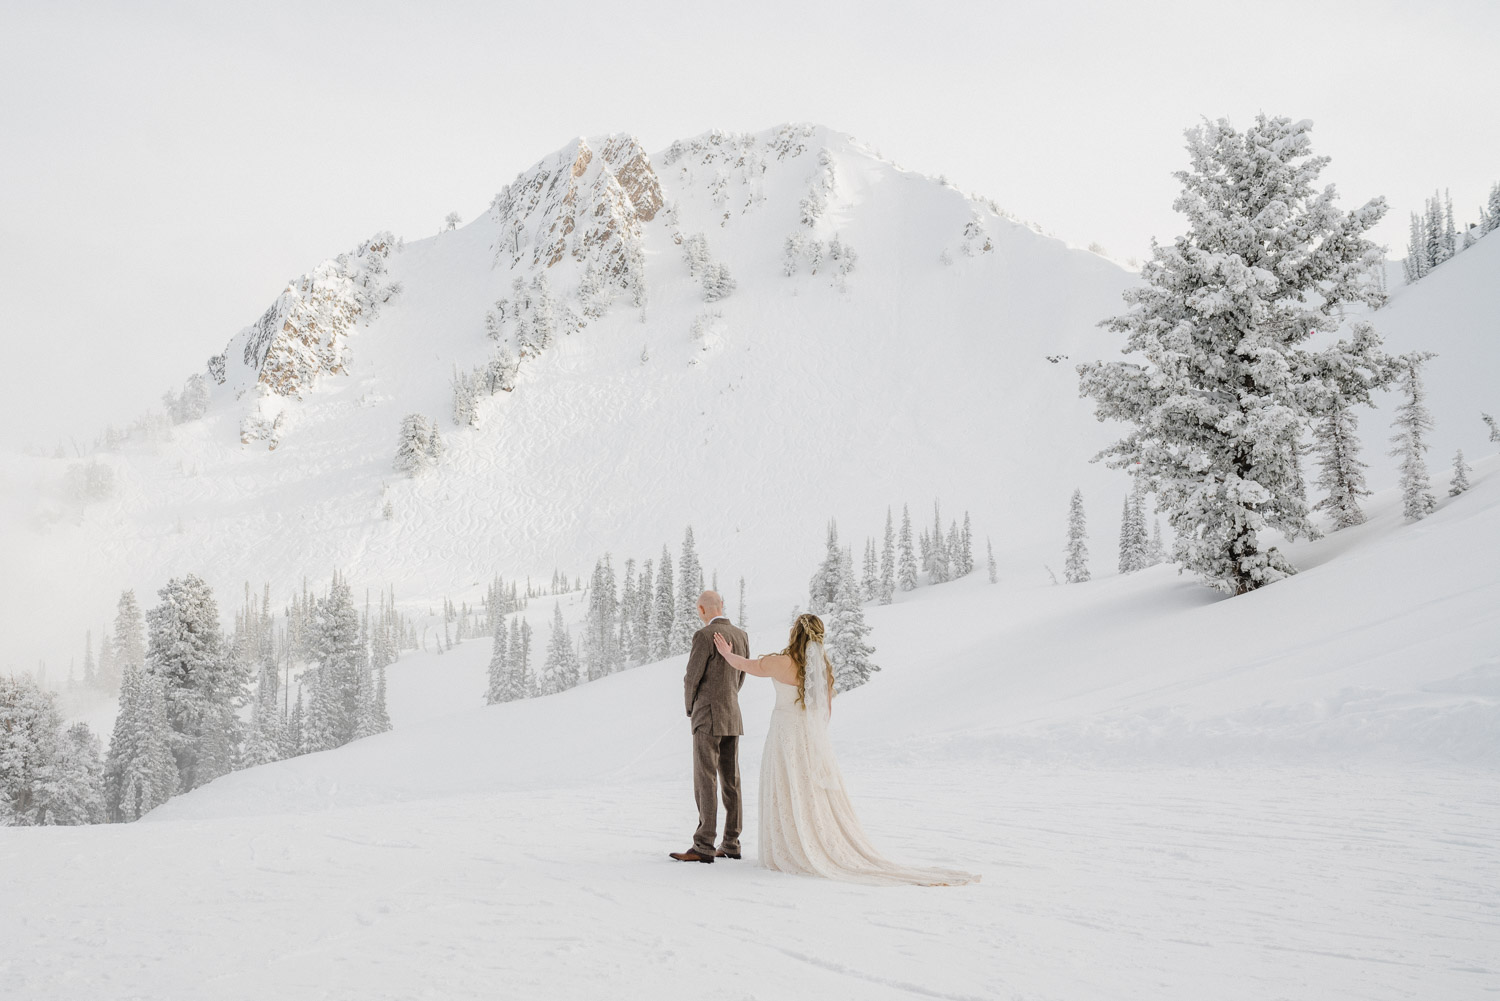 bride and groom on snowy mountain at snowbasin resort